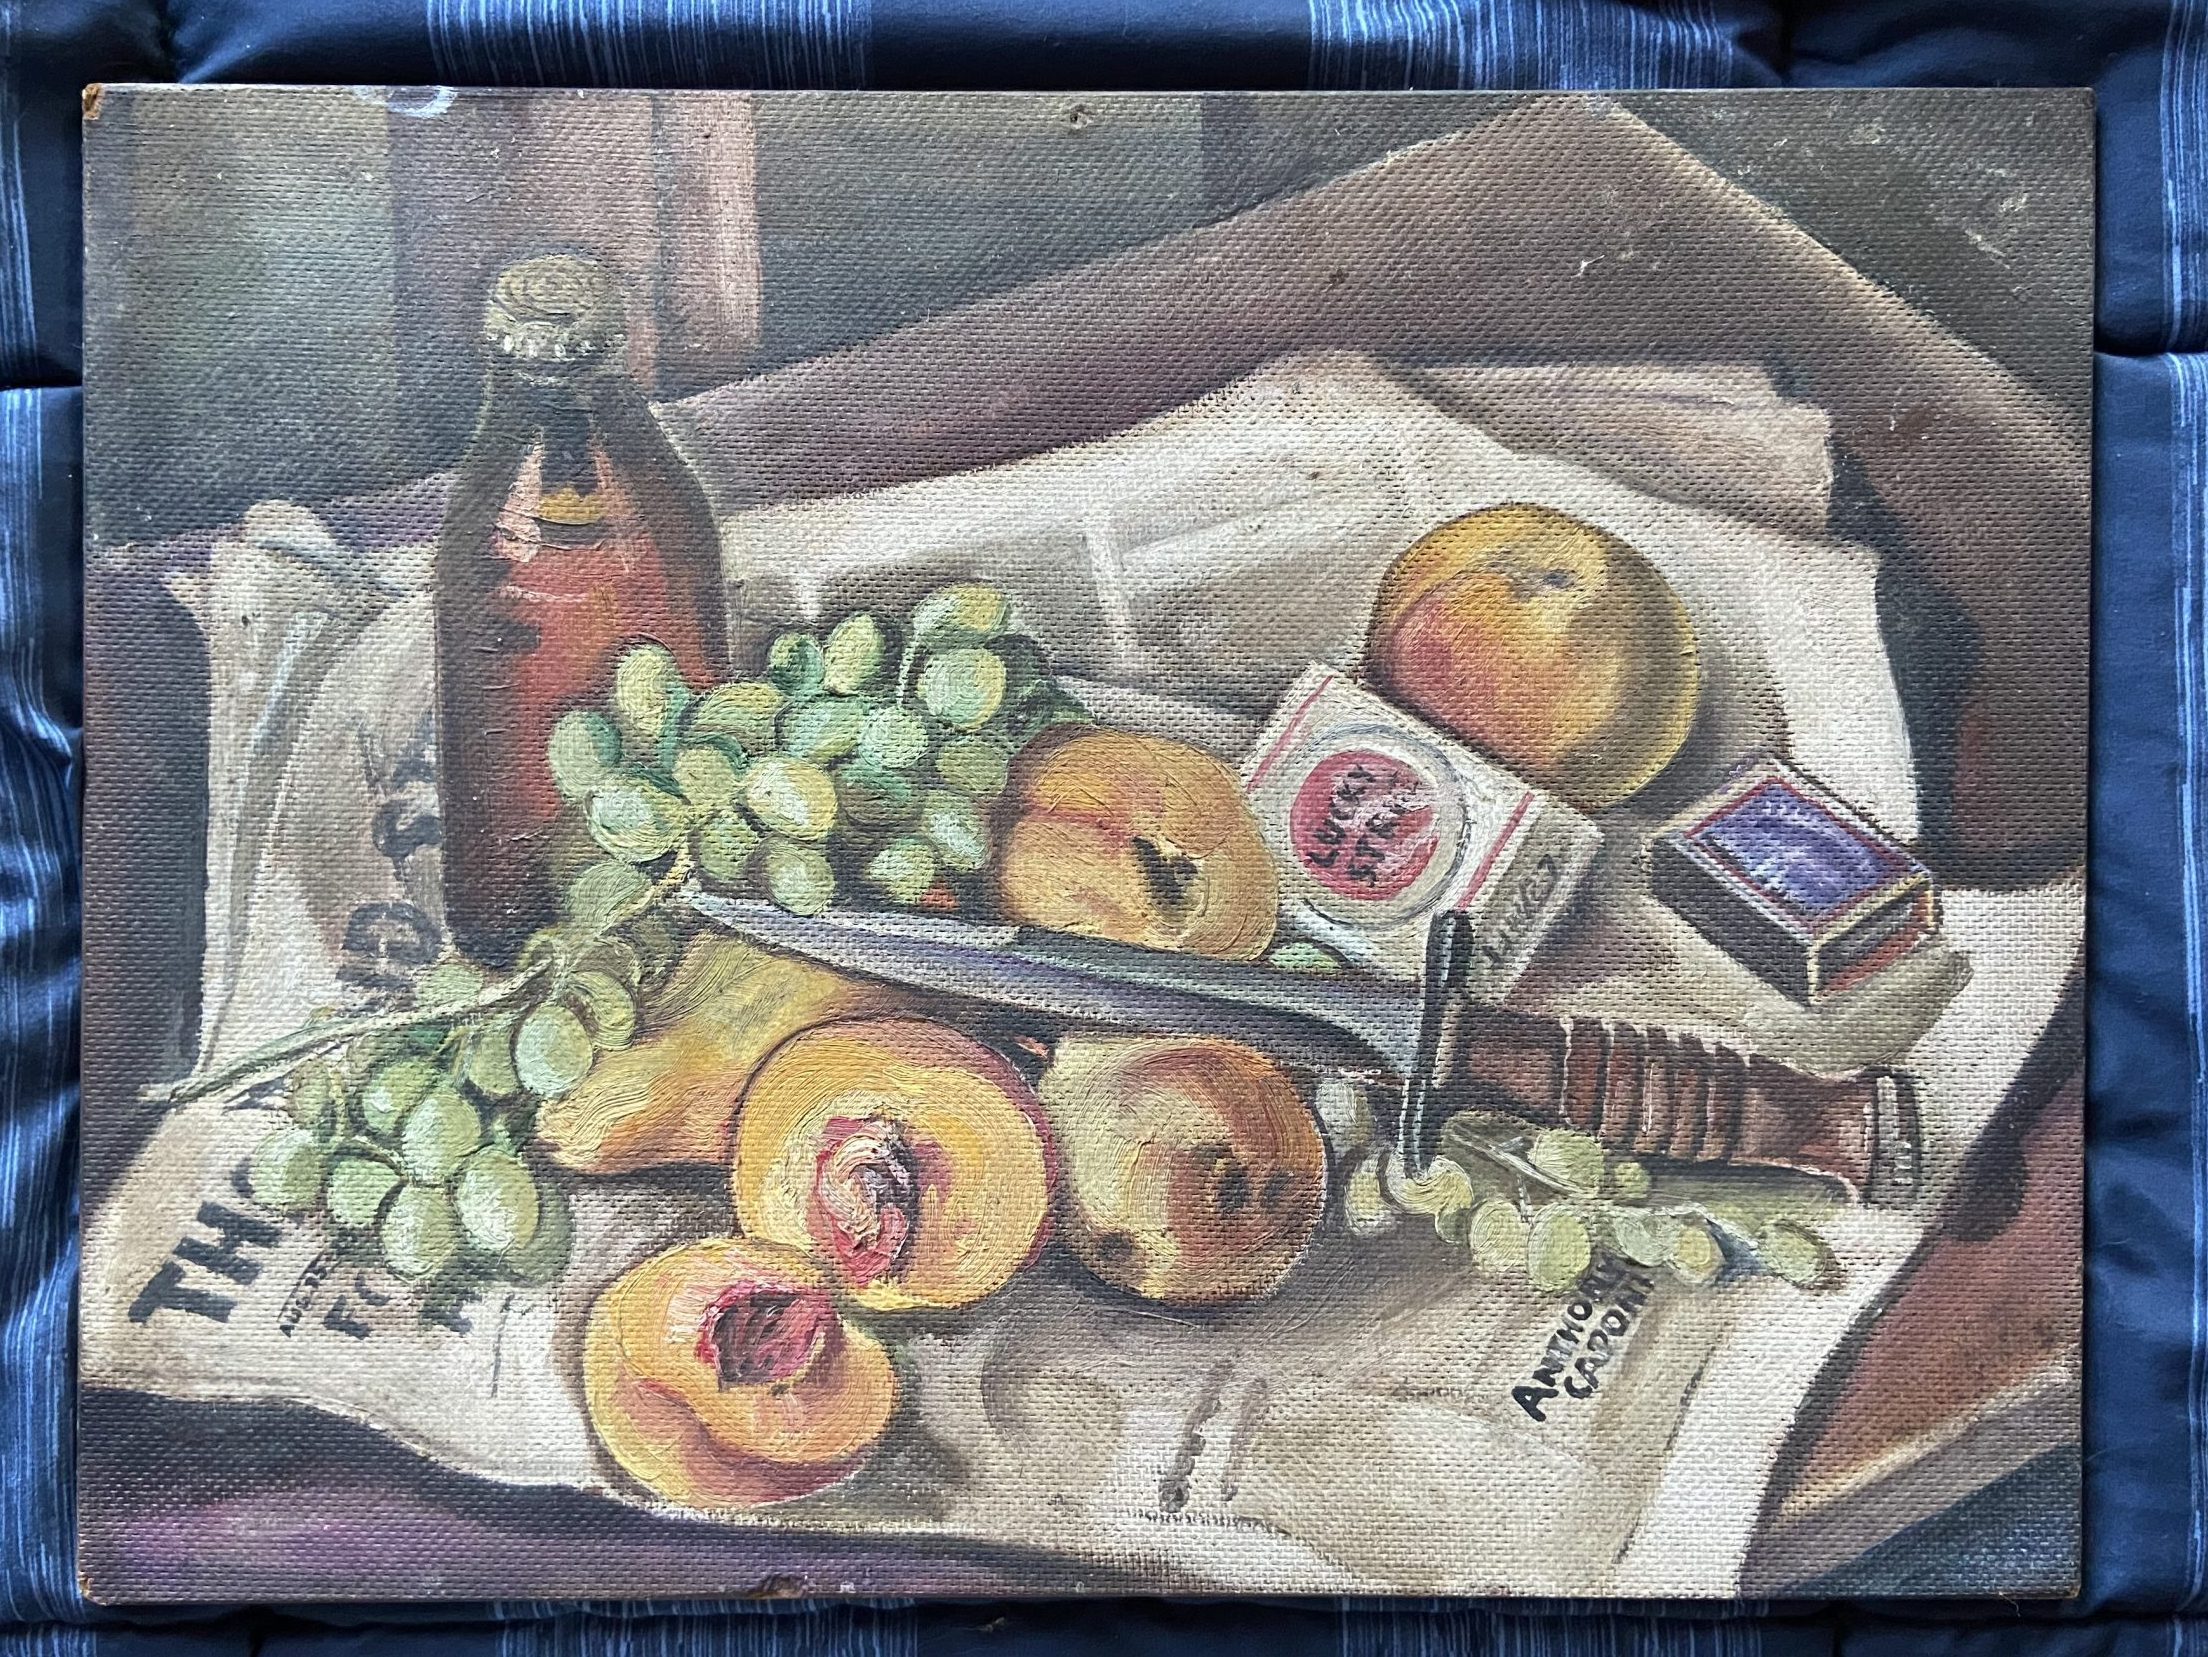 A painting of fruit, cigarettes, drink and a bayonet laying on a newspaper